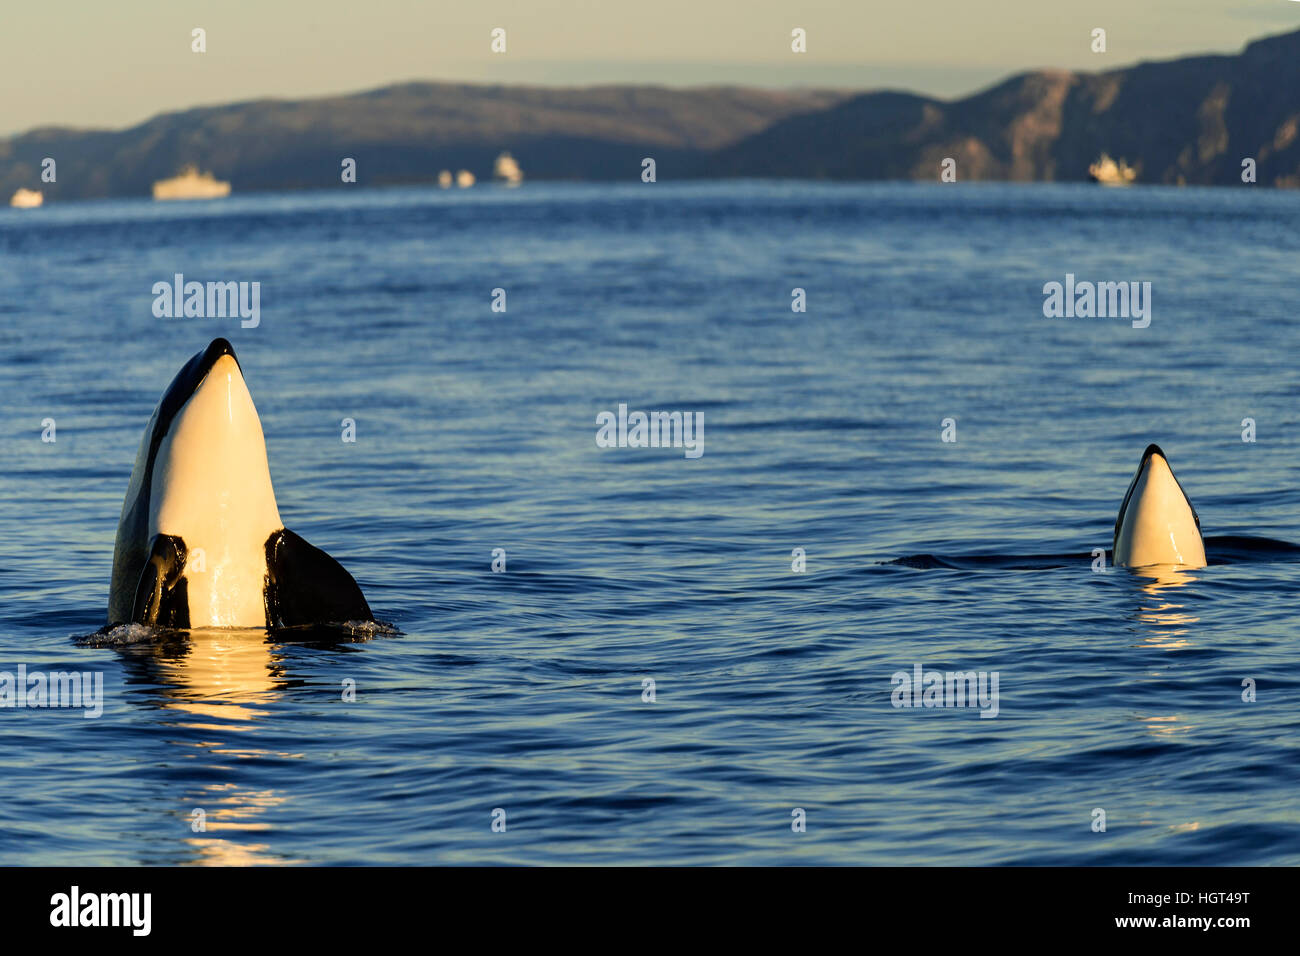 Orcas or killer whales (Orcinus orca), spyhopping, Kaldfjorden, Norway - Stock Image